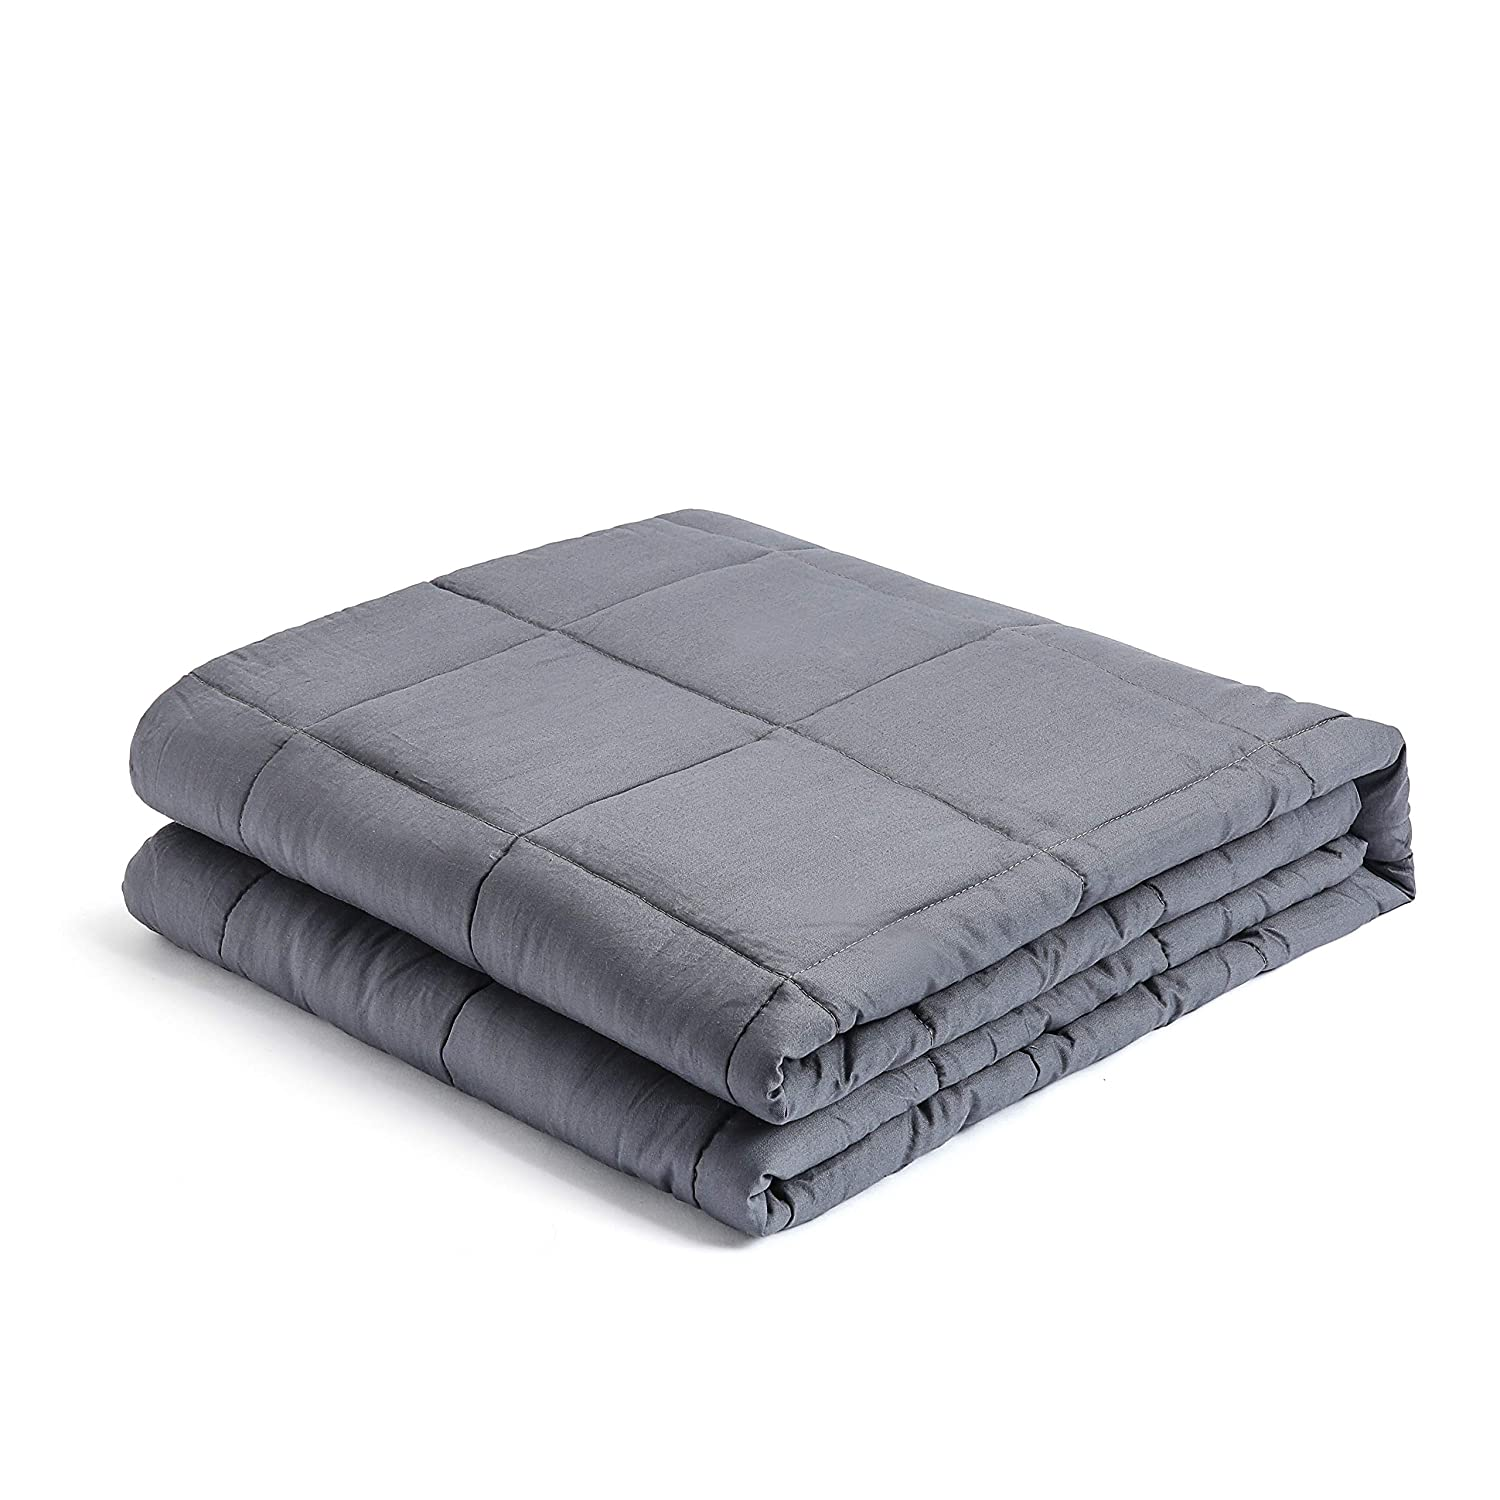 """LAGRATY Weighted Blanket for Adults 15 lbs, 60/""""x80/"""", Queen Size Premium Cotton with Glass Beads Grey LA-WT-1.0 